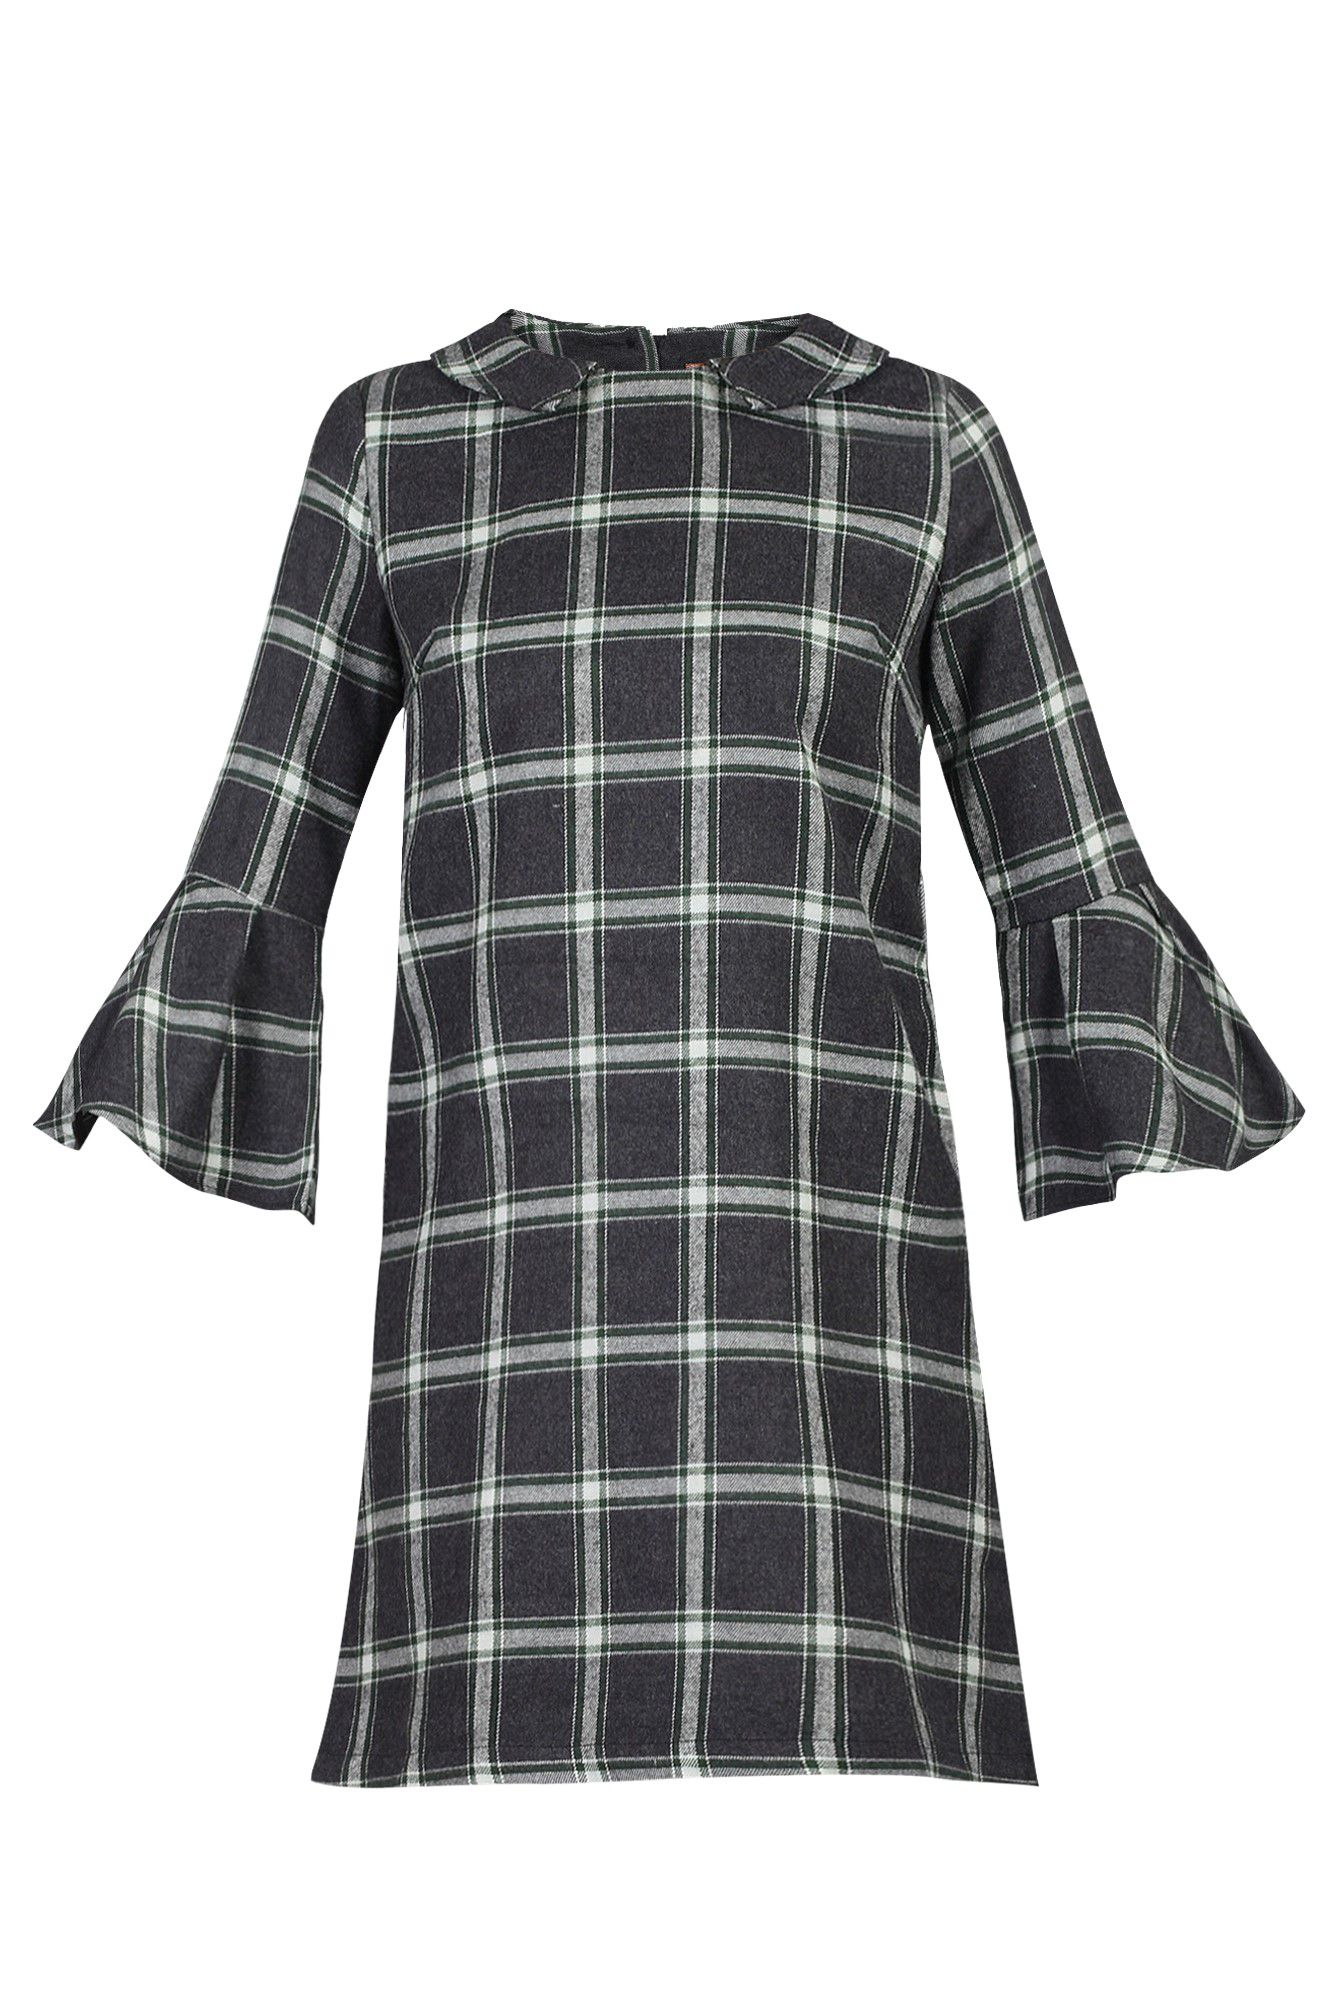 Jolie Moi Checked Fluted Sleeve Tunic, Green